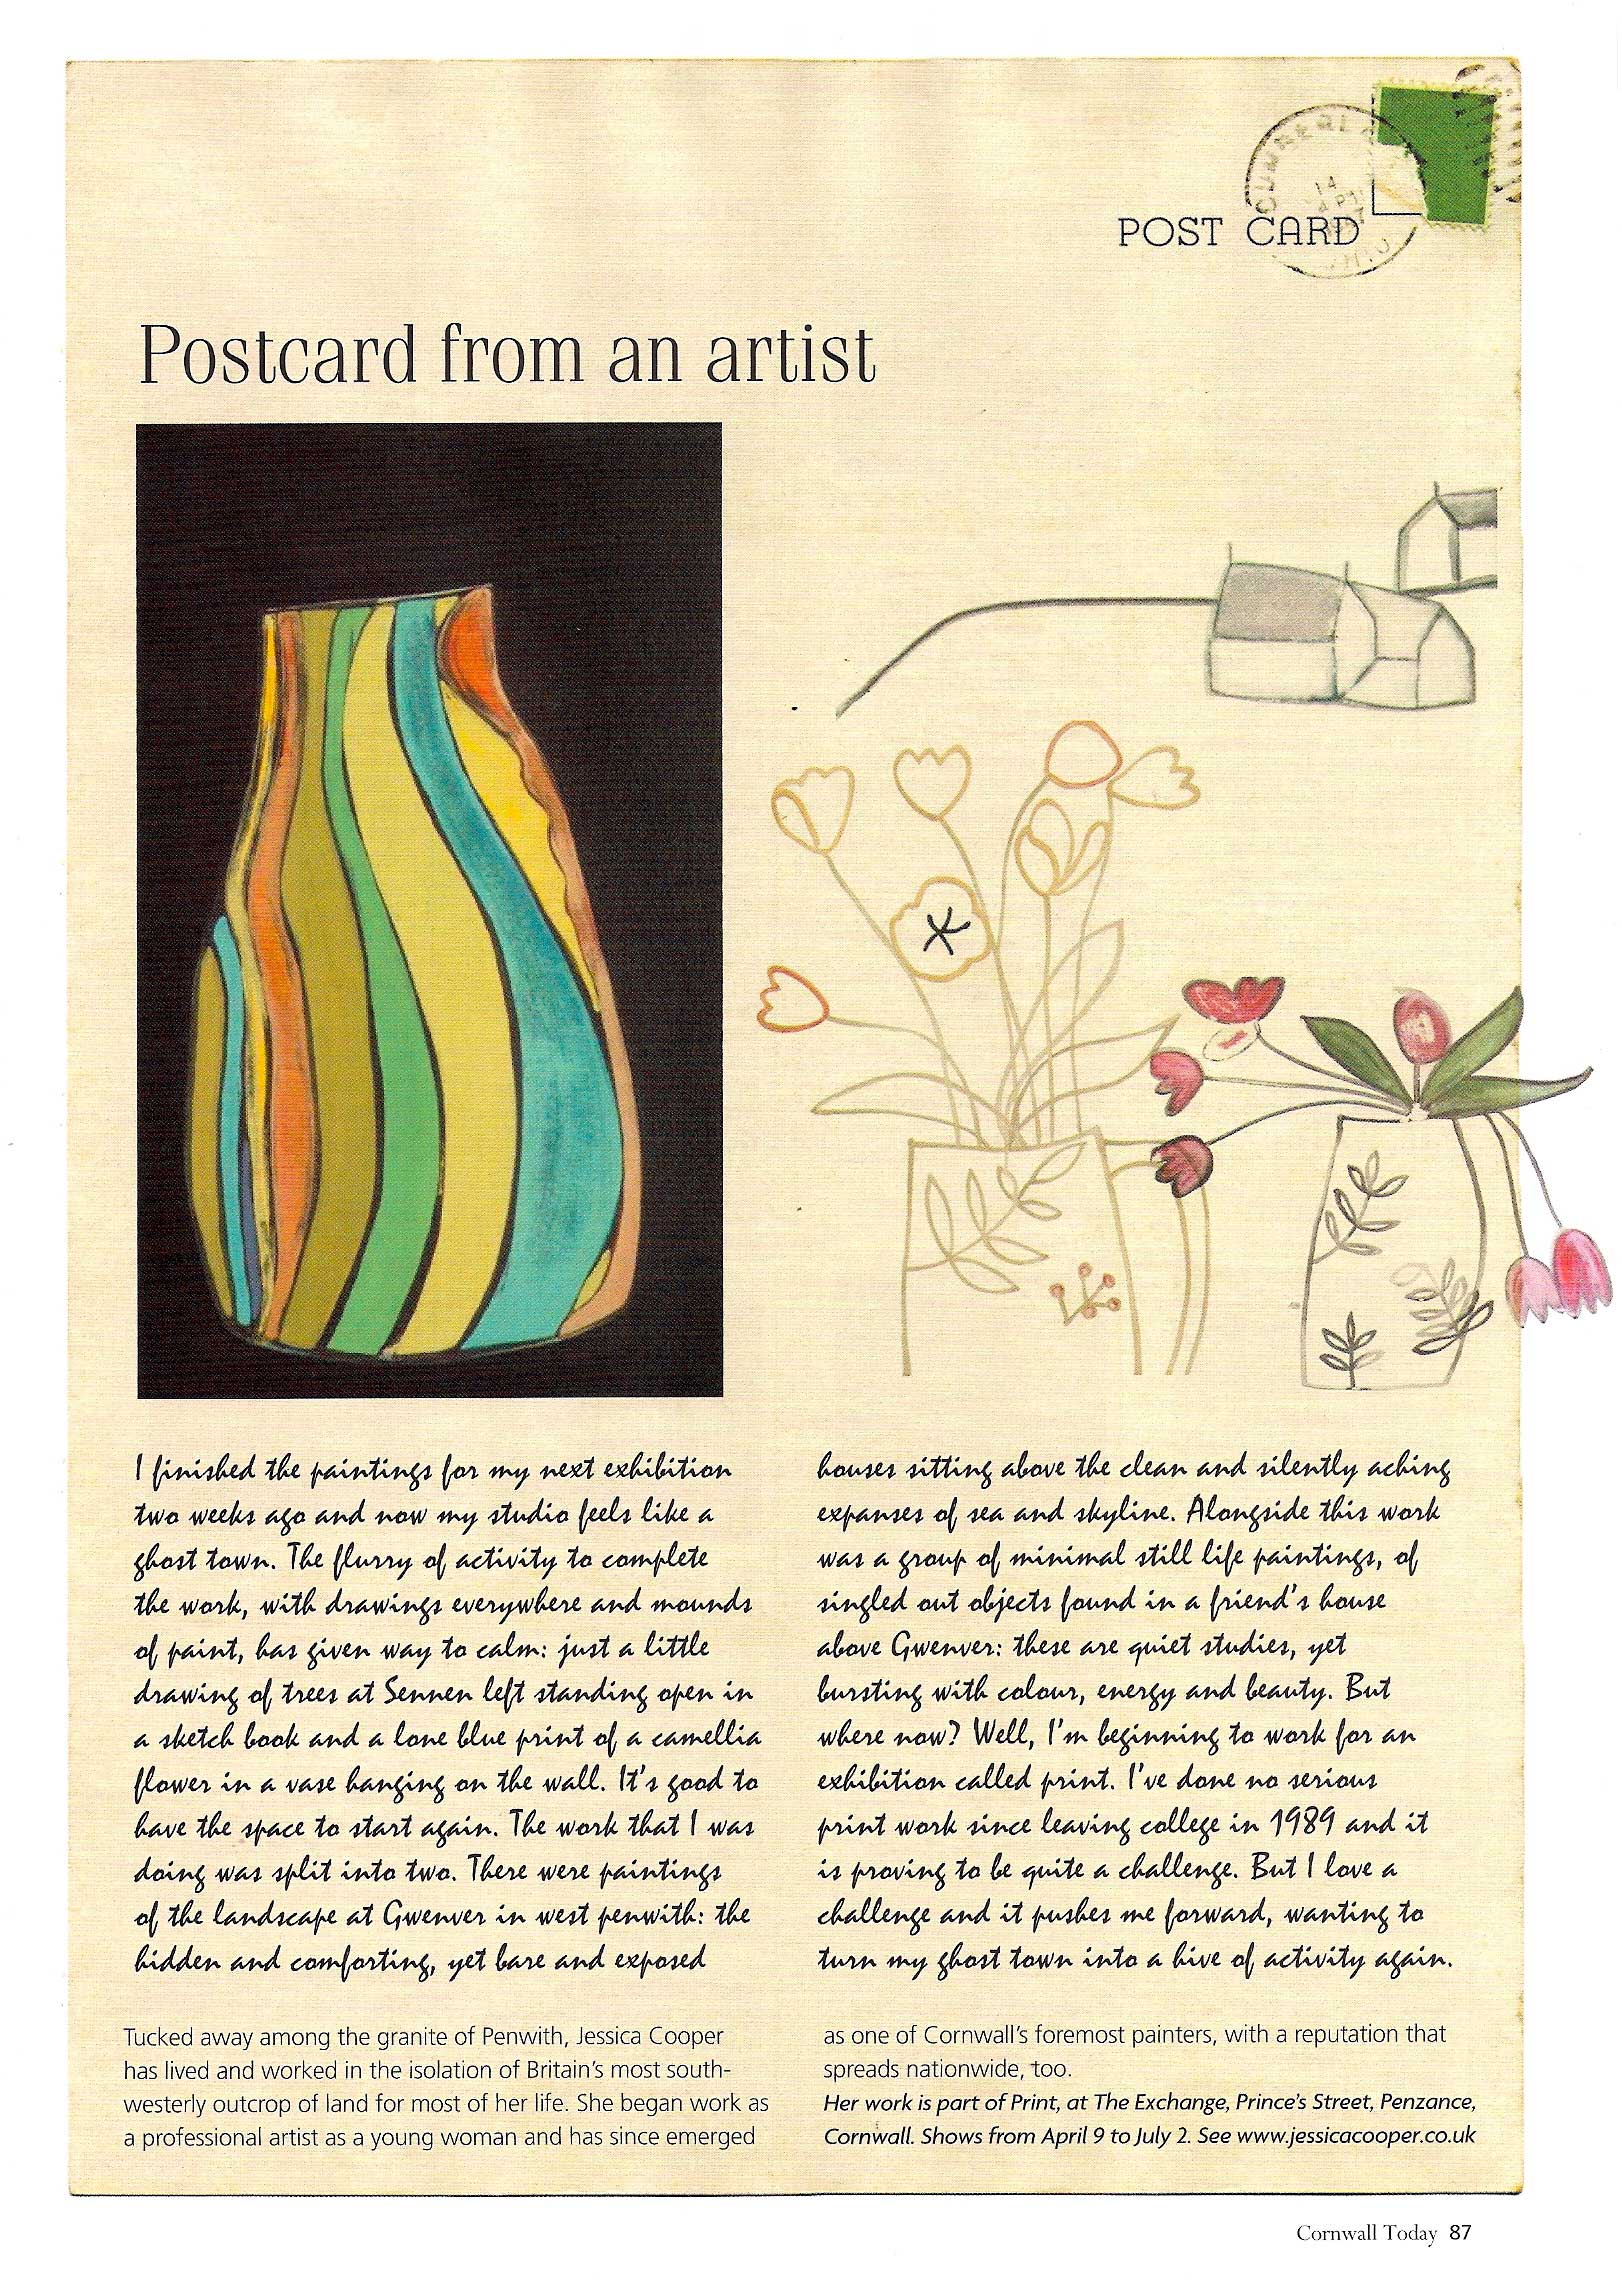 cornwall today : may issue : postcard from an artist